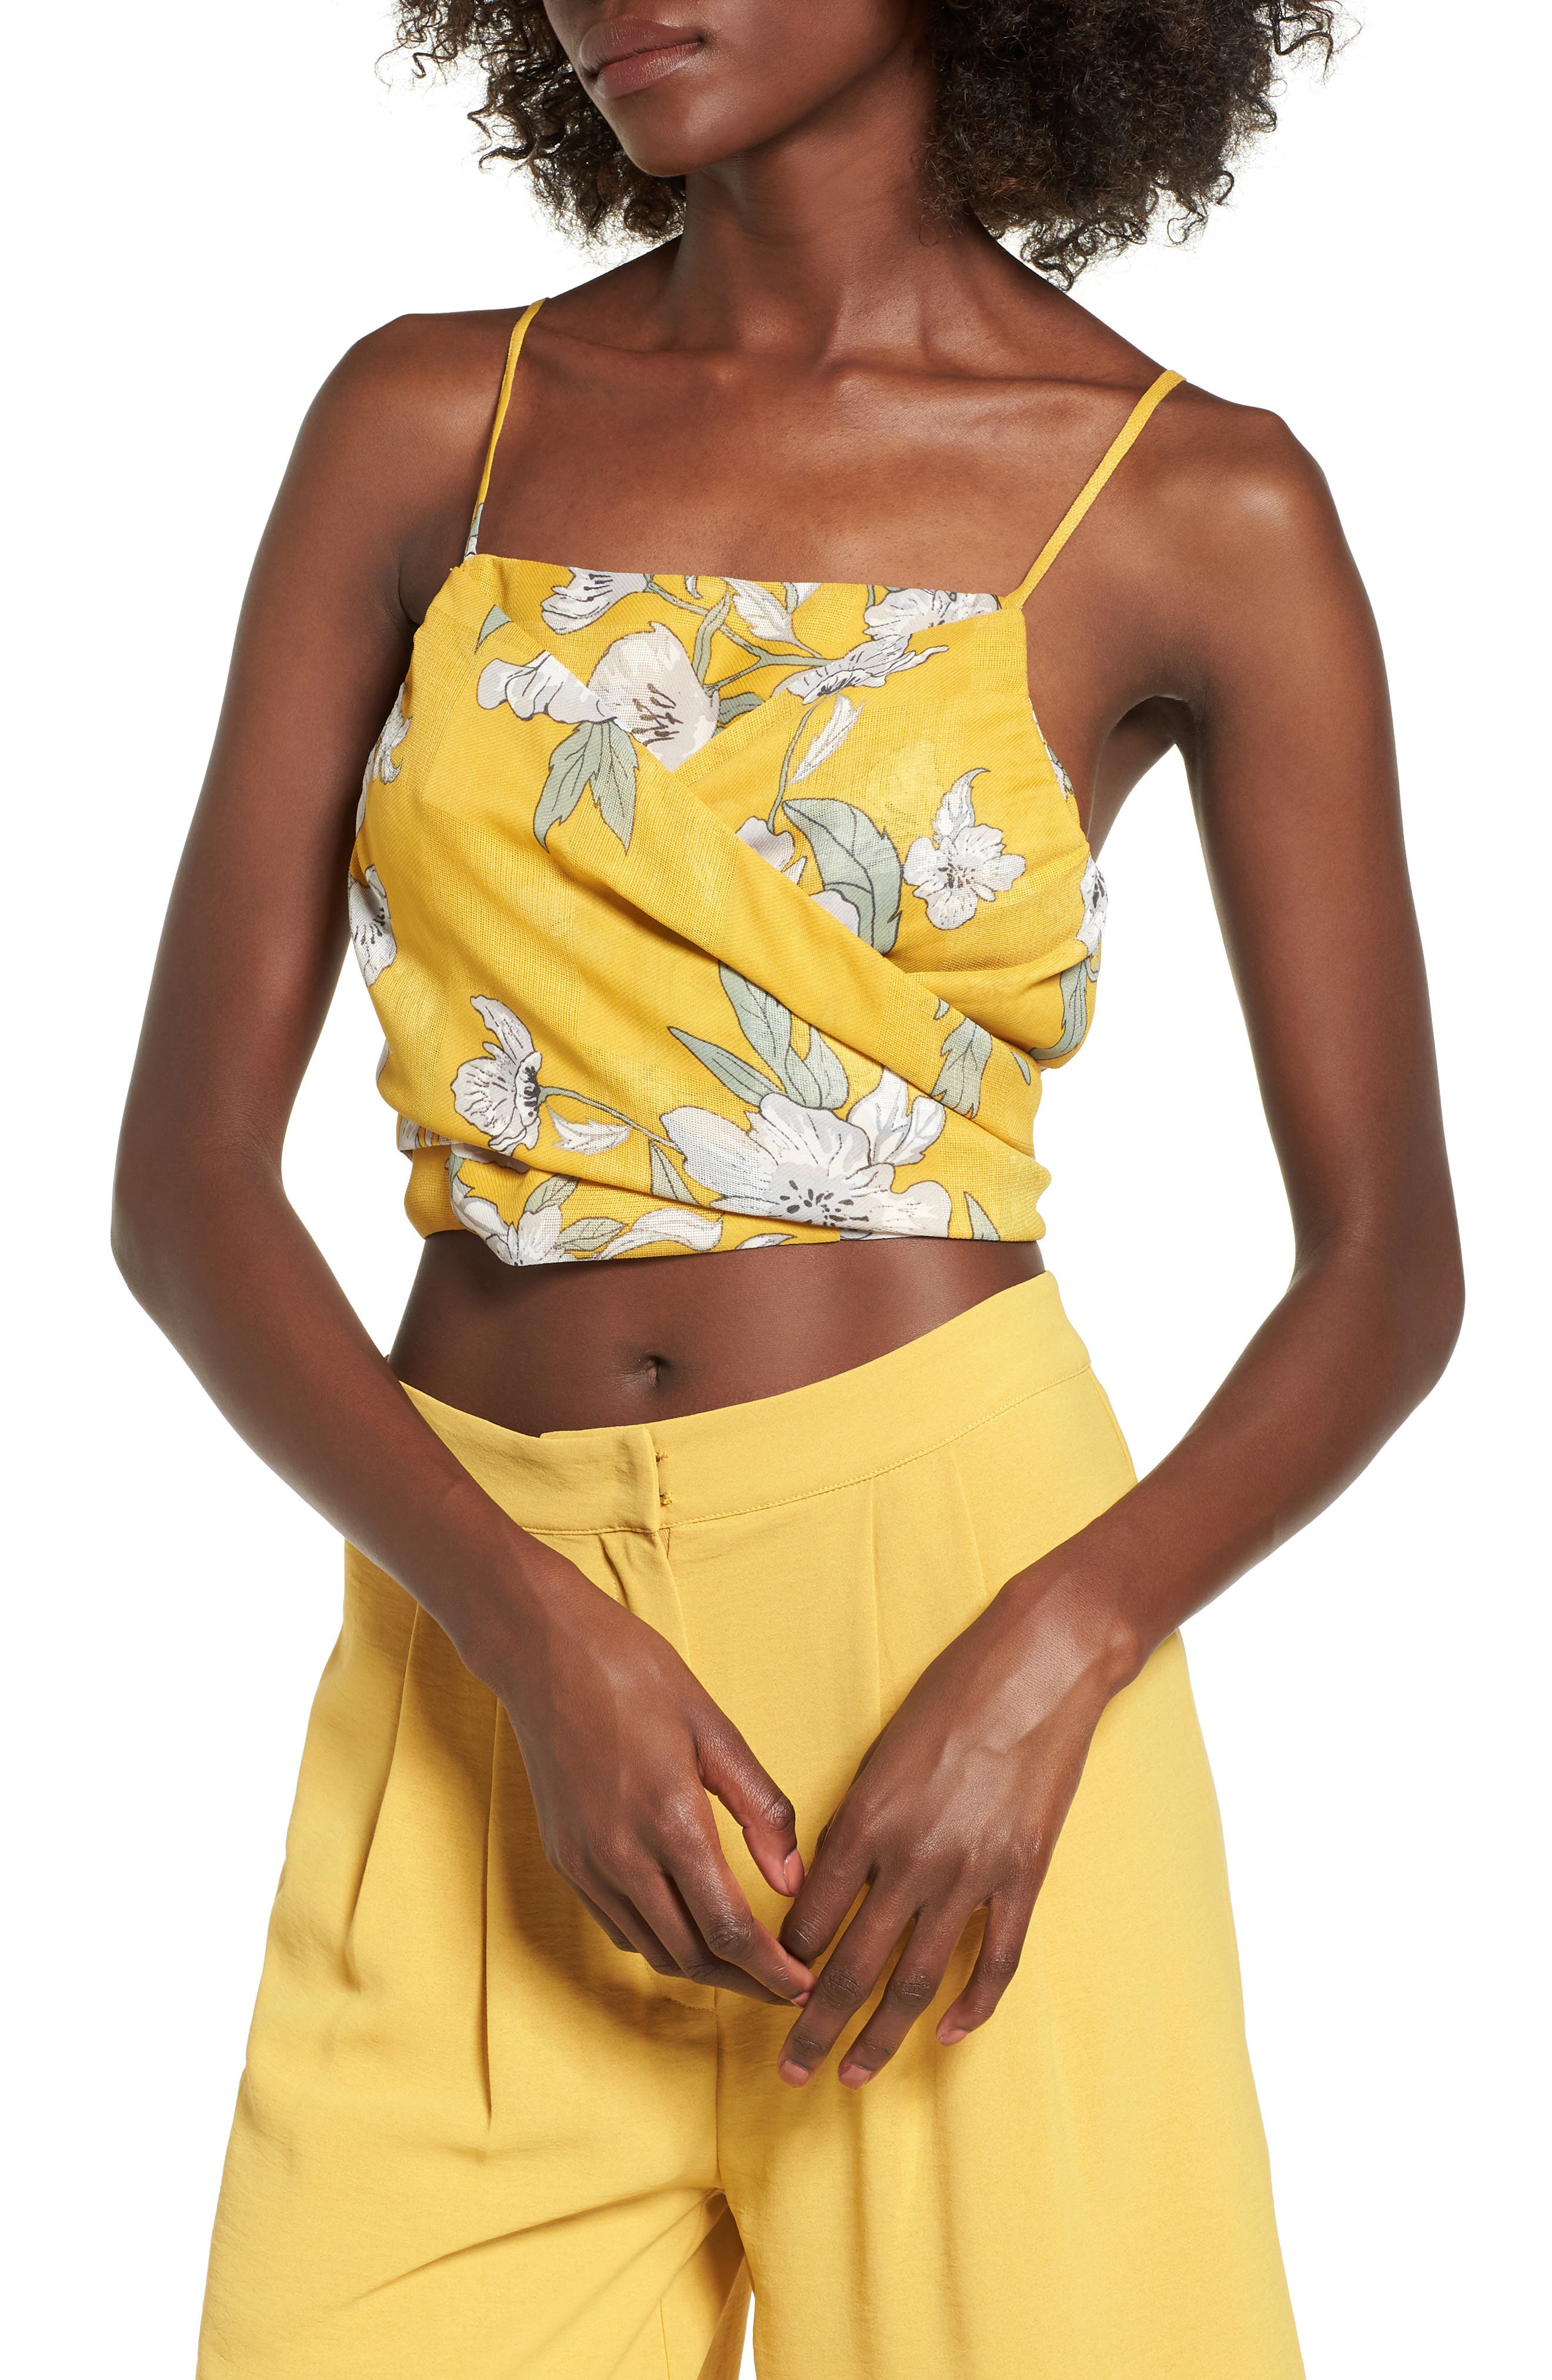 Chriselle x J.O.A. Tie Front Crop Top,                             Alternate thumbnail 6, color,                             Quince Blossom